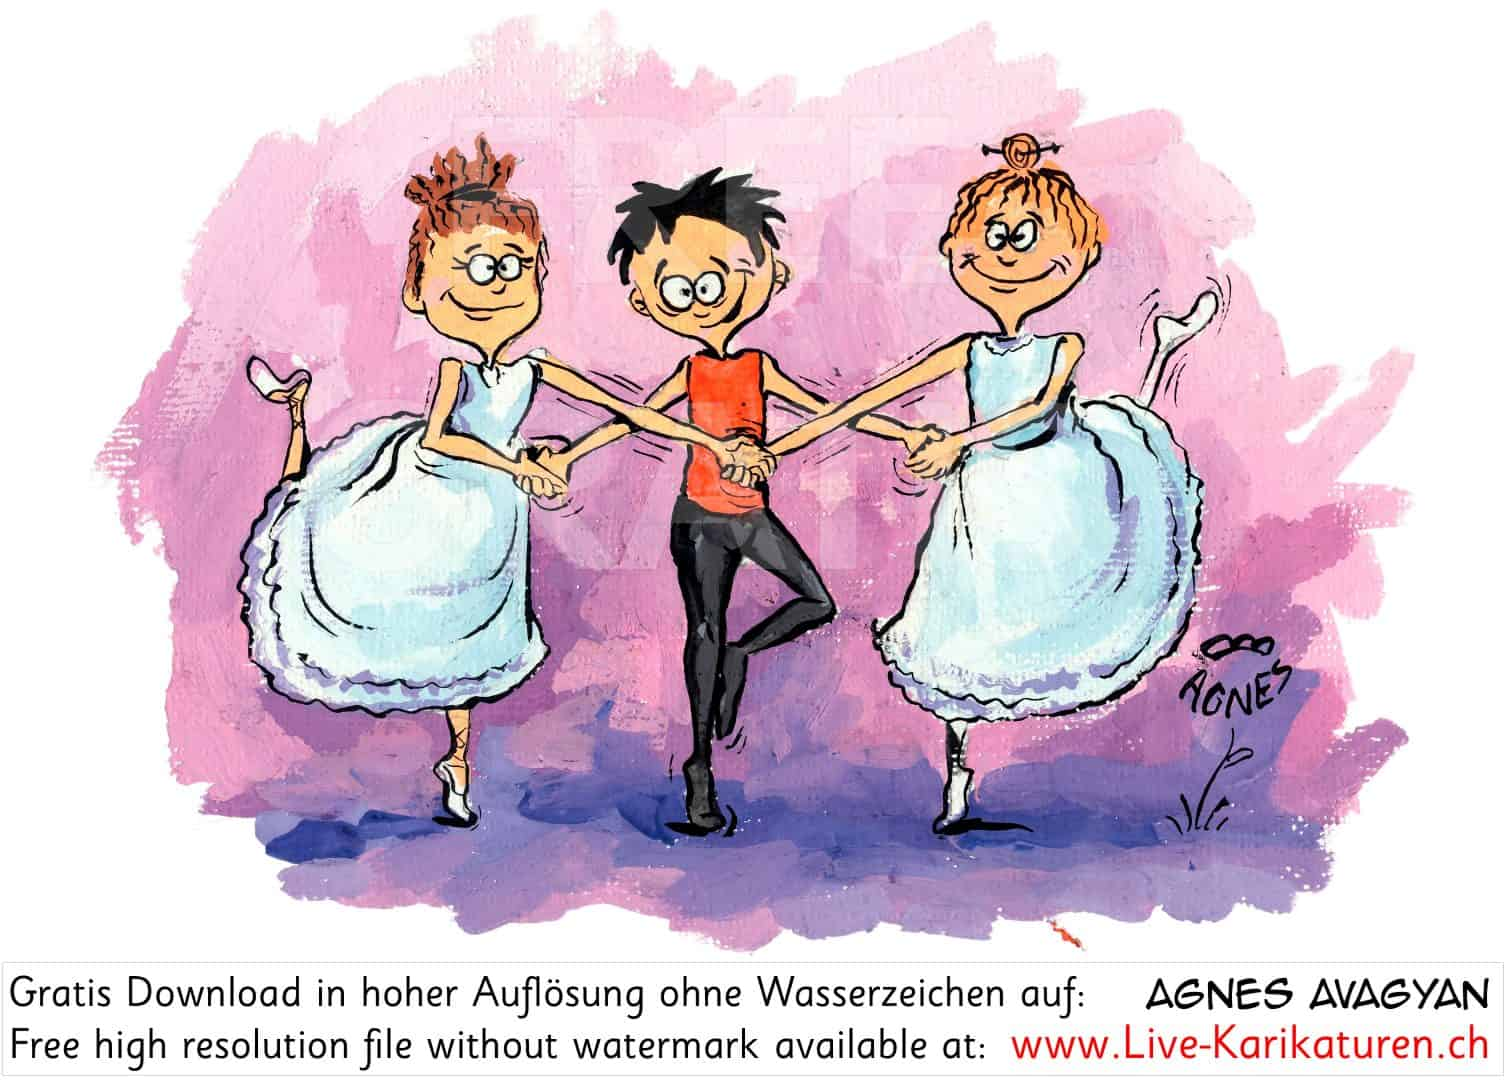 Ballett, klassischer, Tanz, Ballerina, Ballettschule, Ensemble, Taenzer, Agnes, Karikaturen, gratis, free, Clipart, Comic, Cartoon, Zeichnung, Agnes Live-Karikaturen, Download, kostenlos, Gratisbild, Free image, Clipart, Comic, Cartoon, Illustration, Watermark UHD